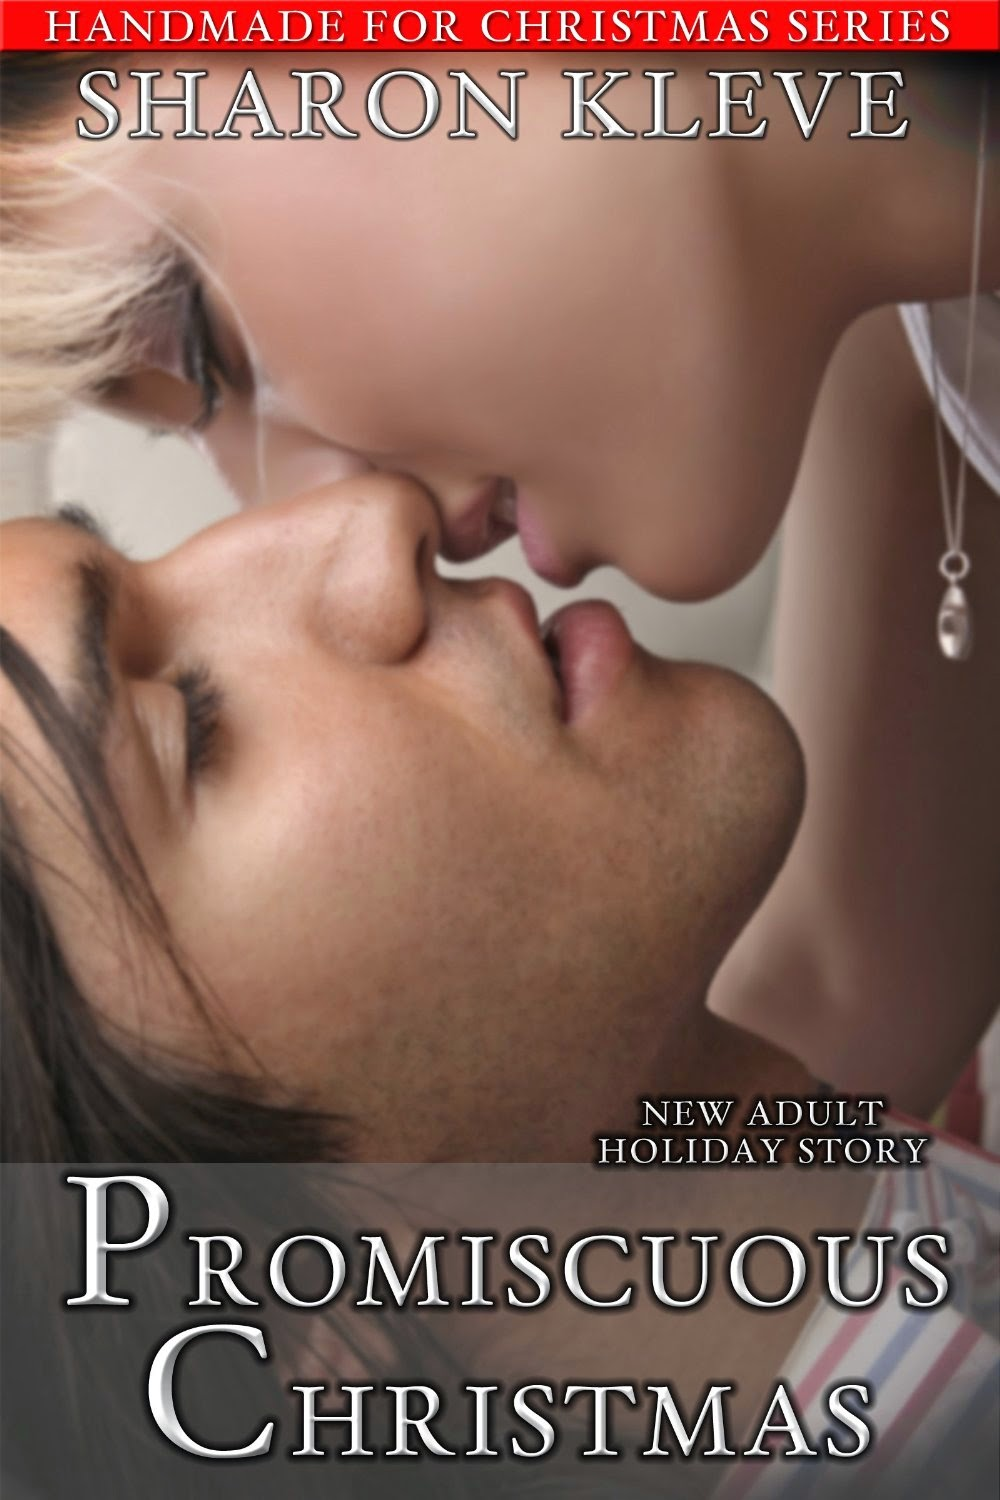 http://www.amazon.com/Promiscuous-Christmas-Handmade-Book-ebook/dp/B00P9RT6YK/ref=sr_1_11?s=books&ie=UTF8&qid=1421614182&sr=1-11&keywords=sharon+kleve